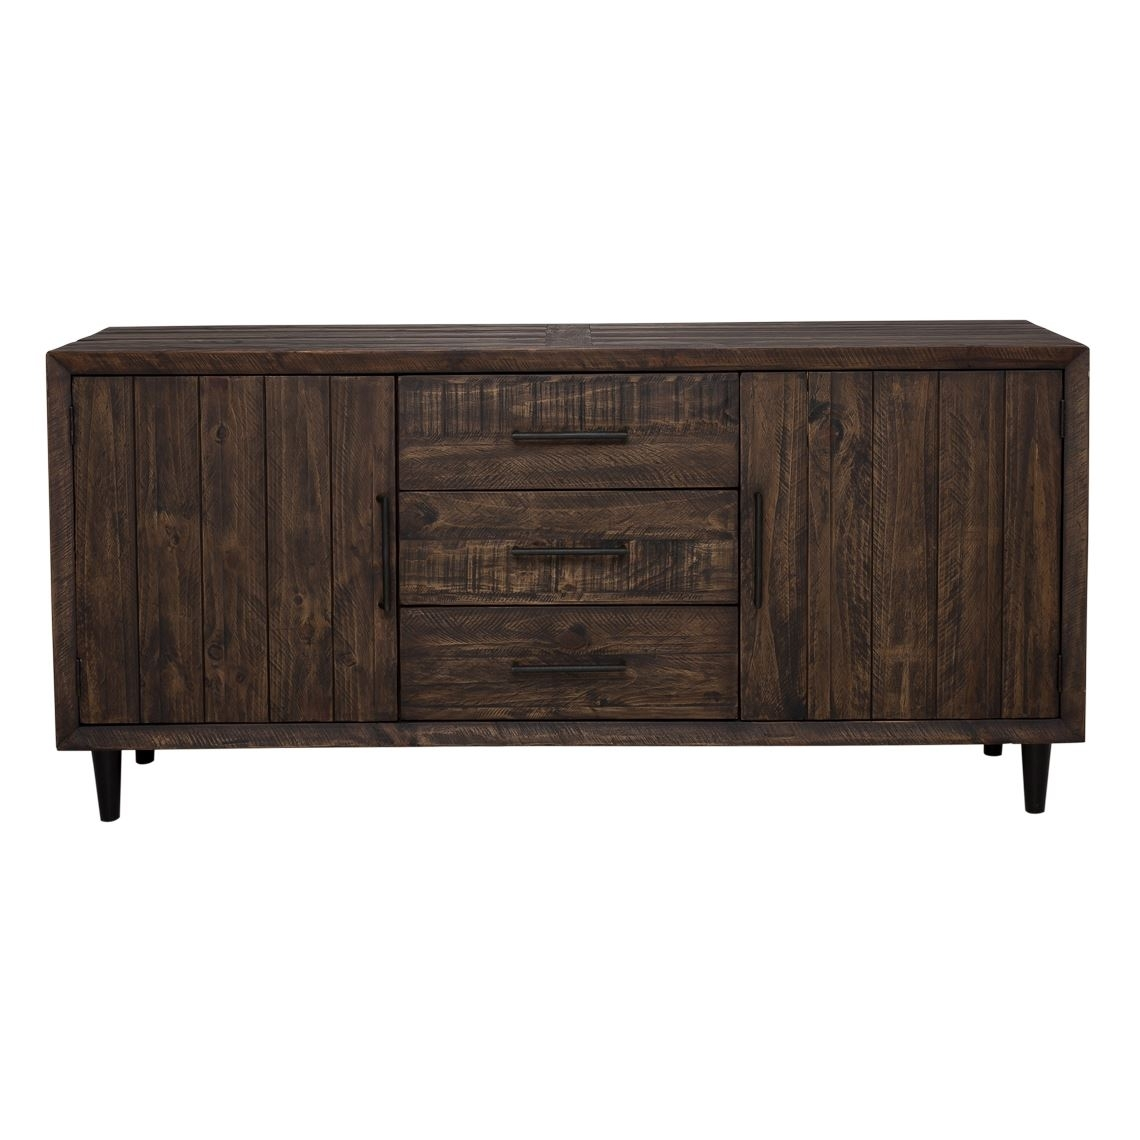 Freedom Furniture And Homewares within Mango Wood Grey 4-Drawer 4-Door Sideboards (Image 9 of 30)